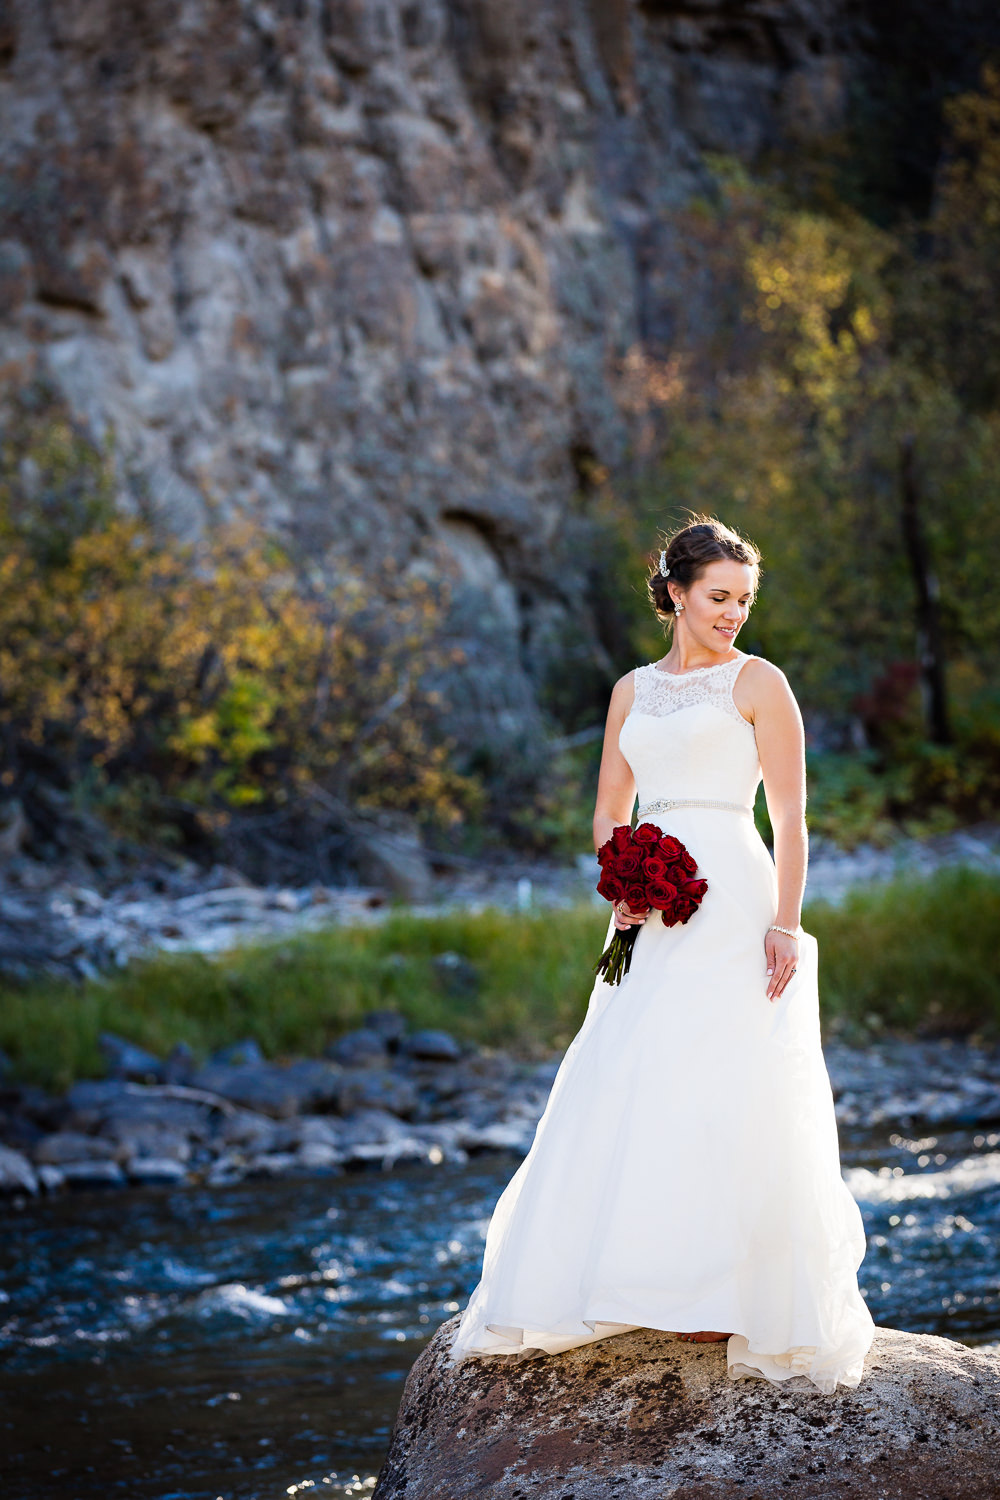 absaroka-beartooth-wilderness-montana-wedding-reception-bride-along-river.jpg